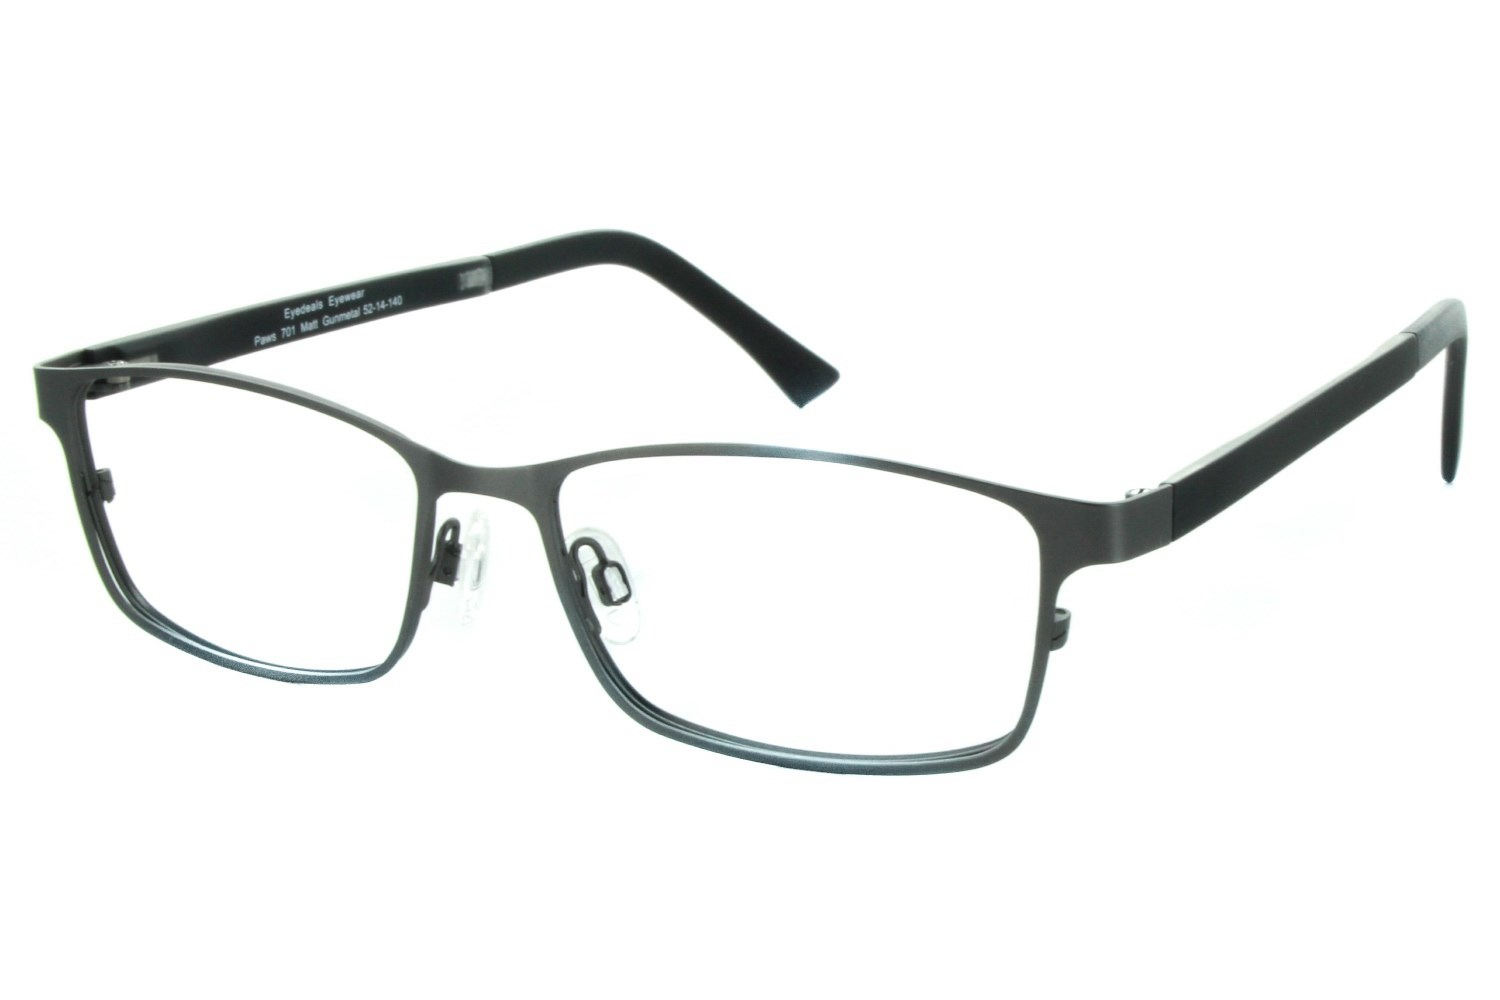 ee37ac2b312 Eyewear glasses and contact lenses superstore Paws n Claws Paws 701 Eyeglasses  Frames